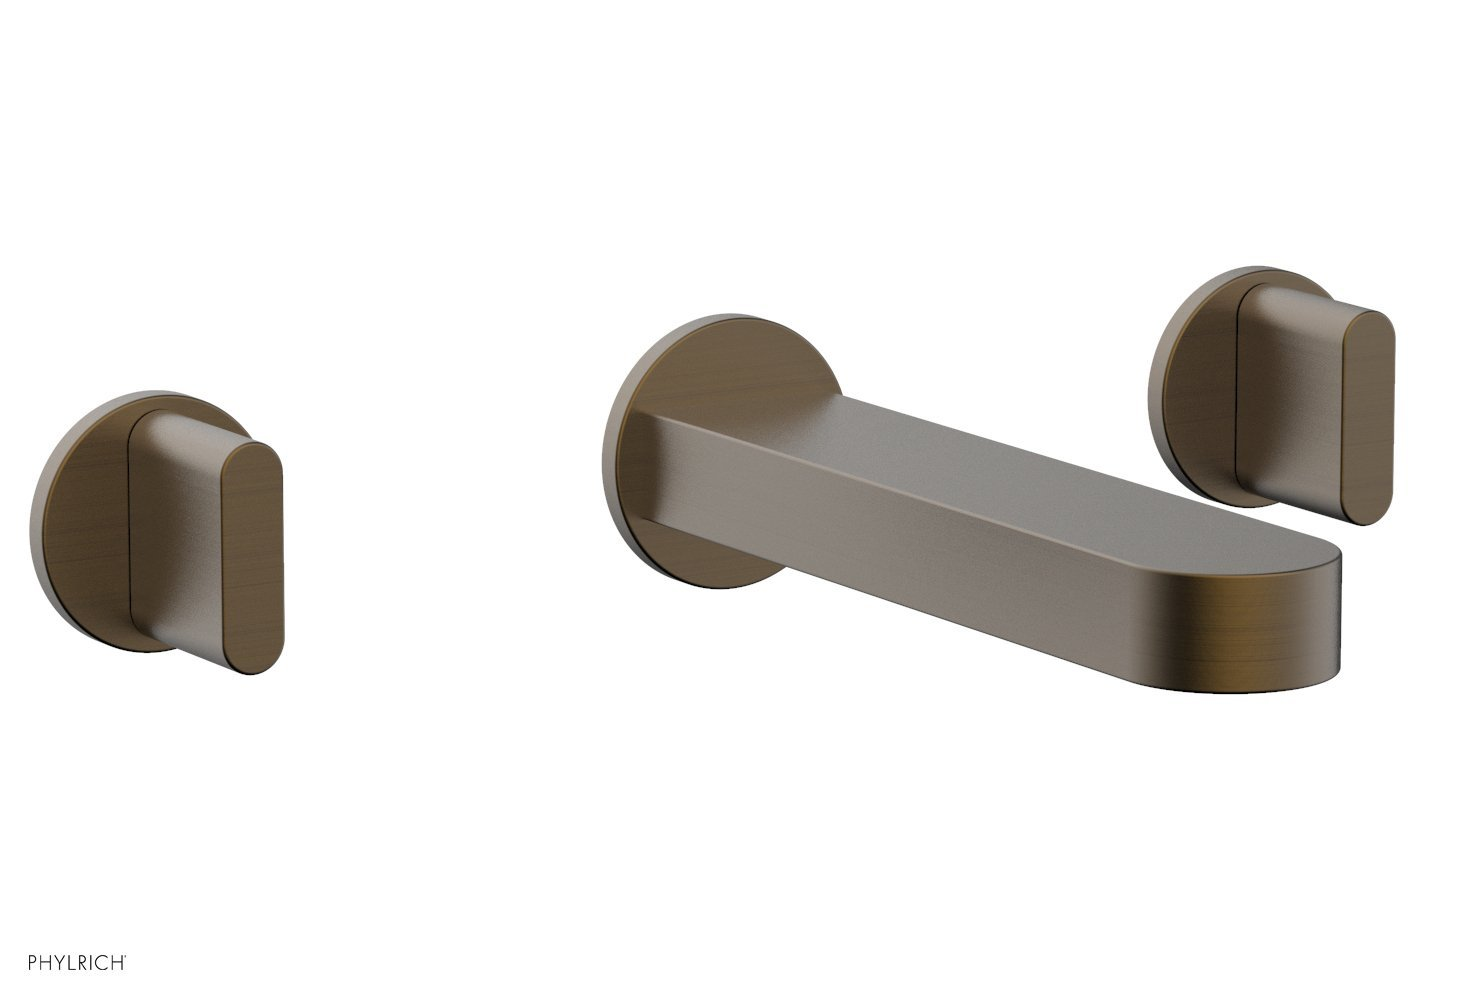 Phylrich 183-11-OEB ROND Wall Lavatory Set - Blade Handles - Old English Brass